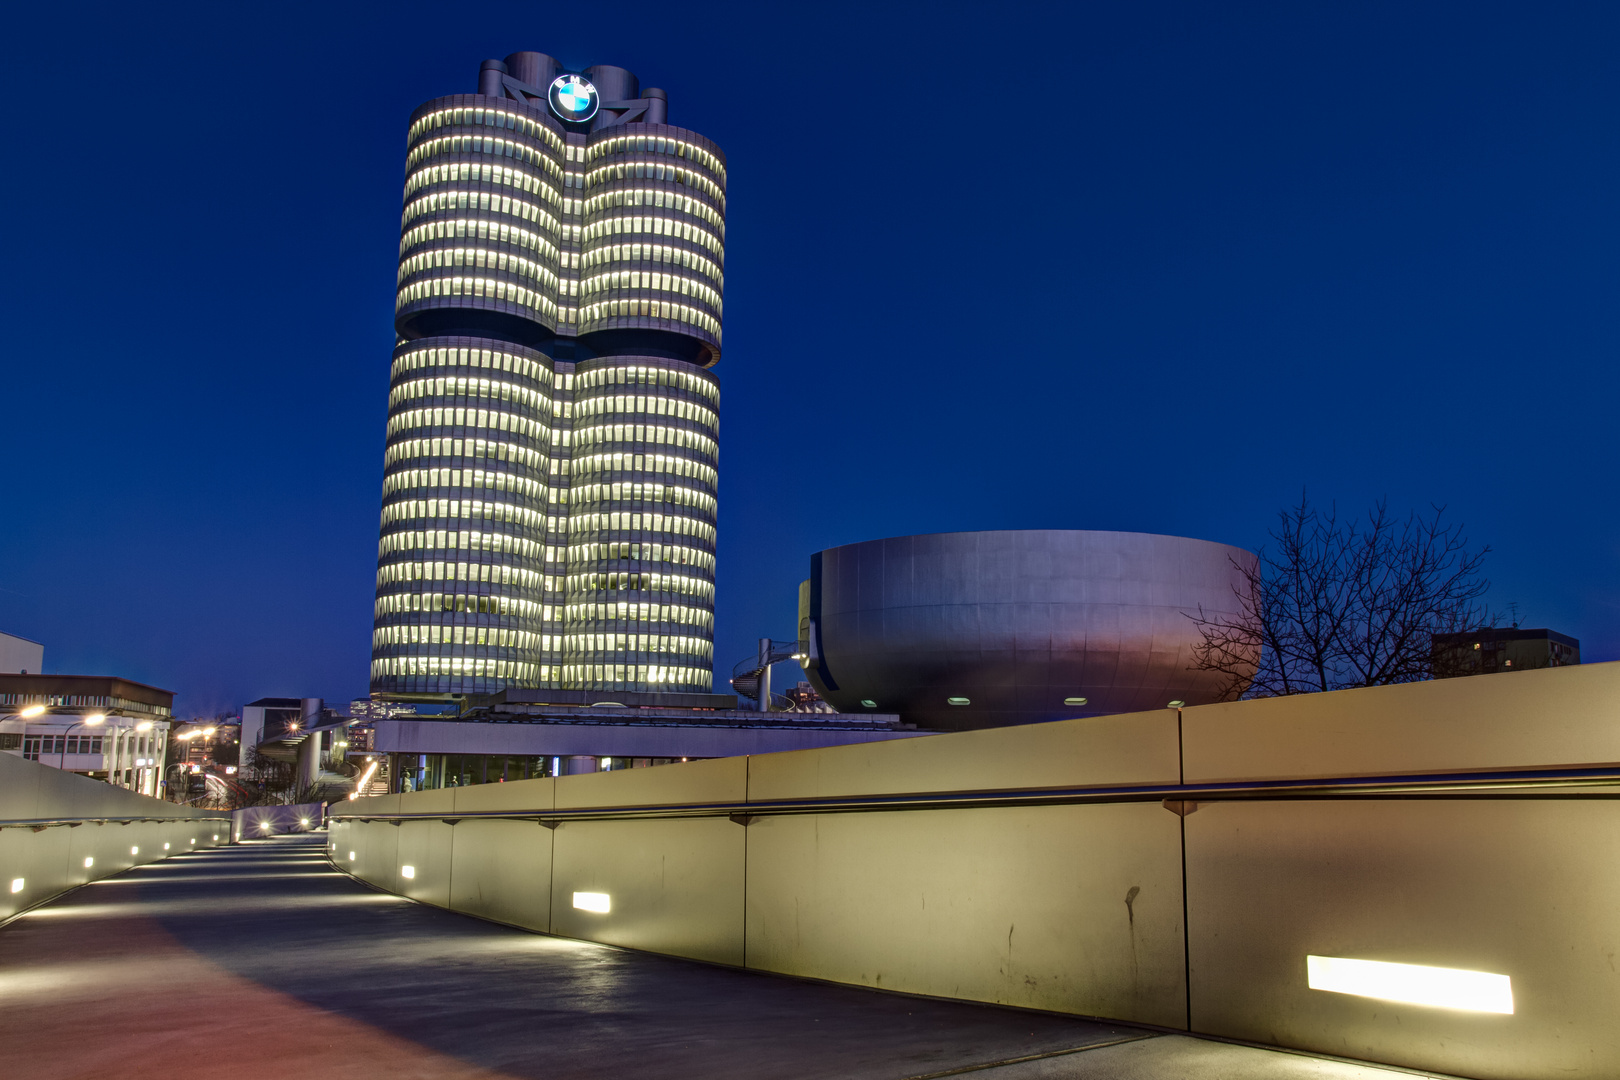 BMW Building - The 4-Zylinder - At Night